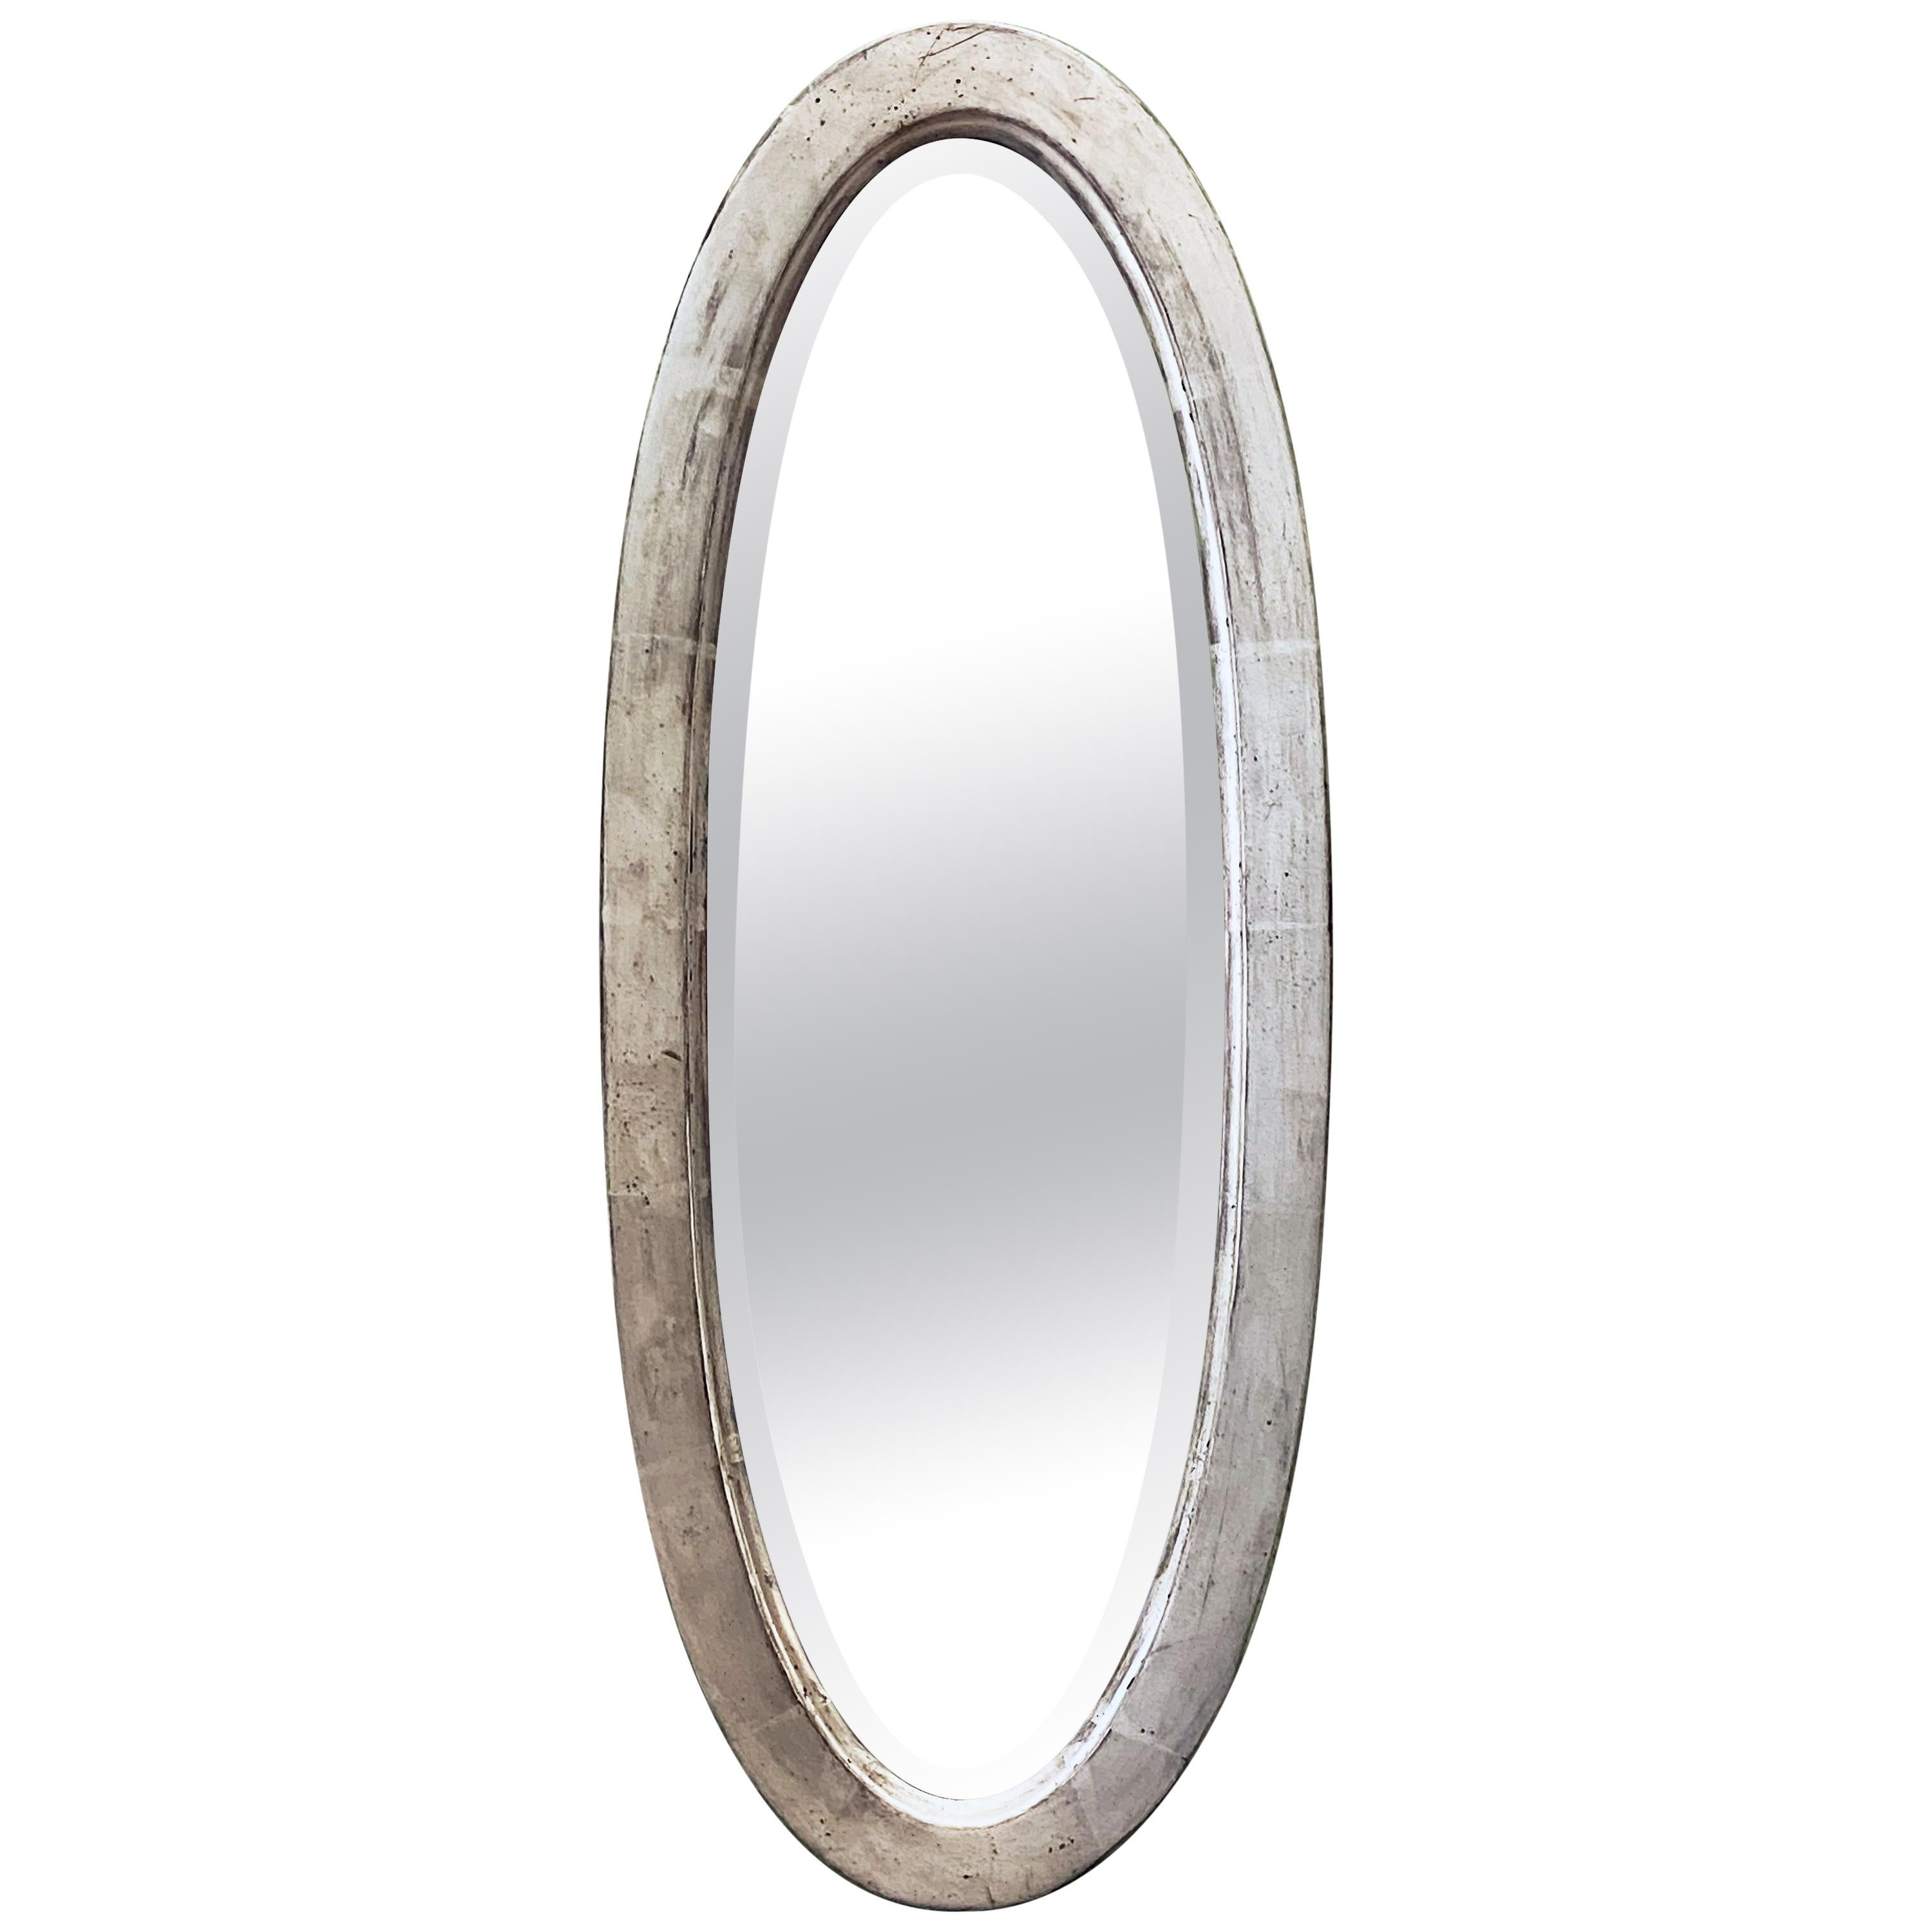 English Oval Beveled Alcove Mirror with Silver Gilt Frame